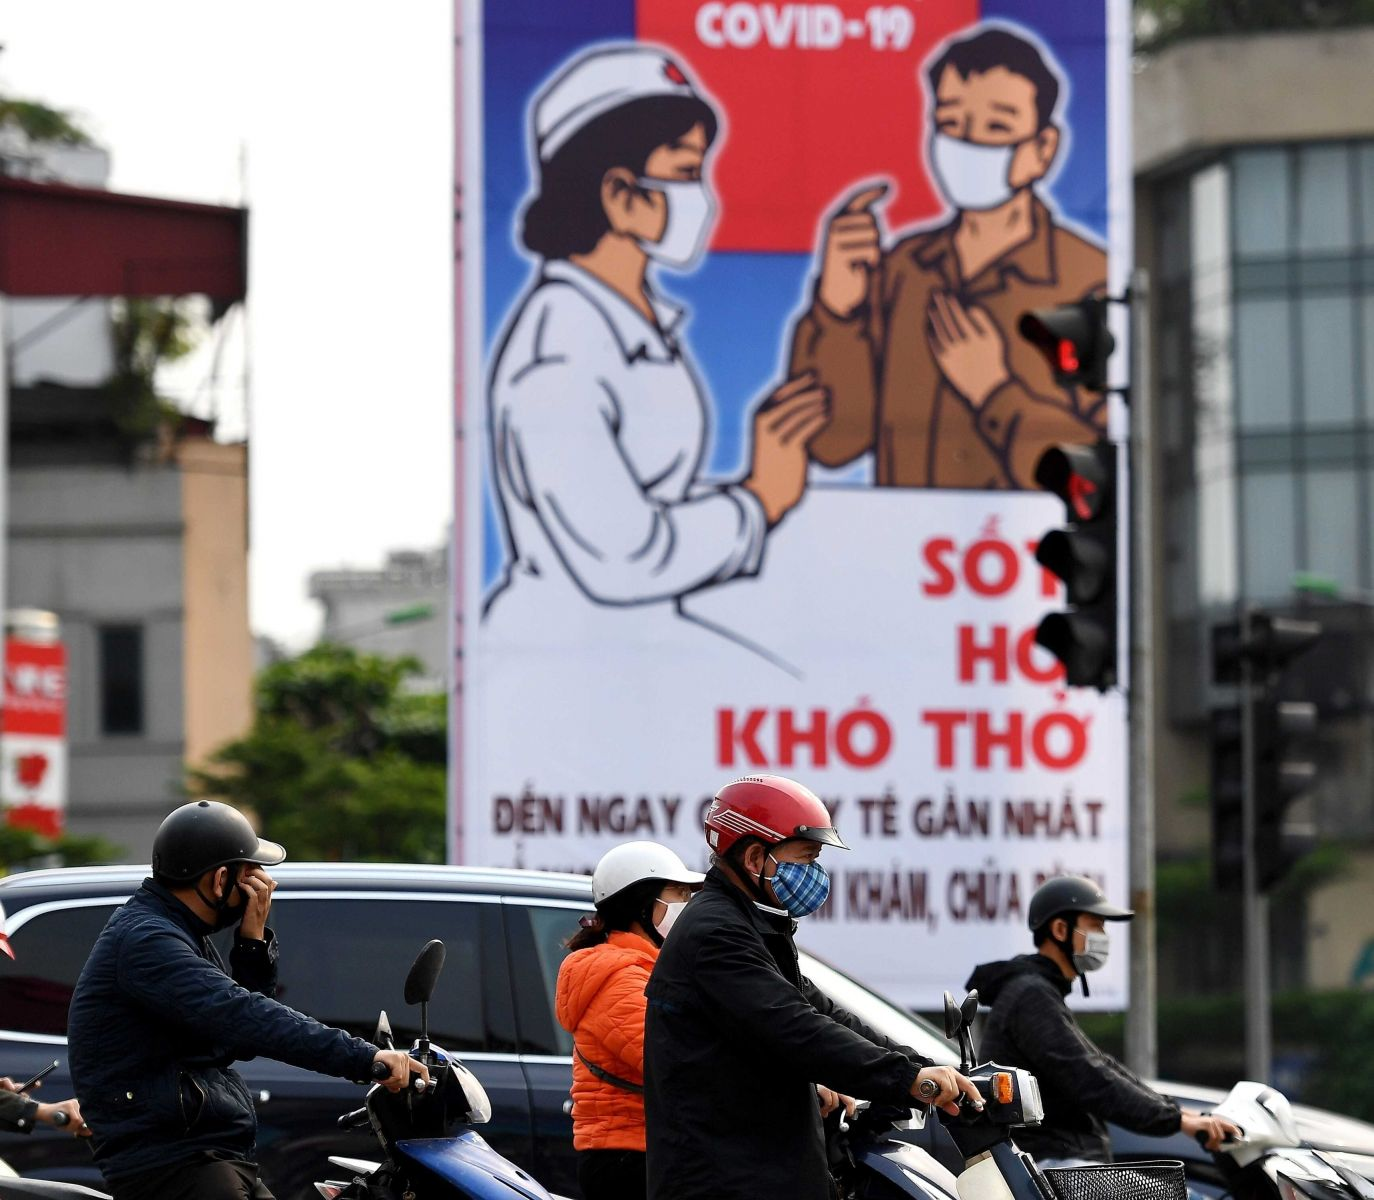 motorcycles on busy Hanoi street passing by billboard uging masks to prevent against Covid-19